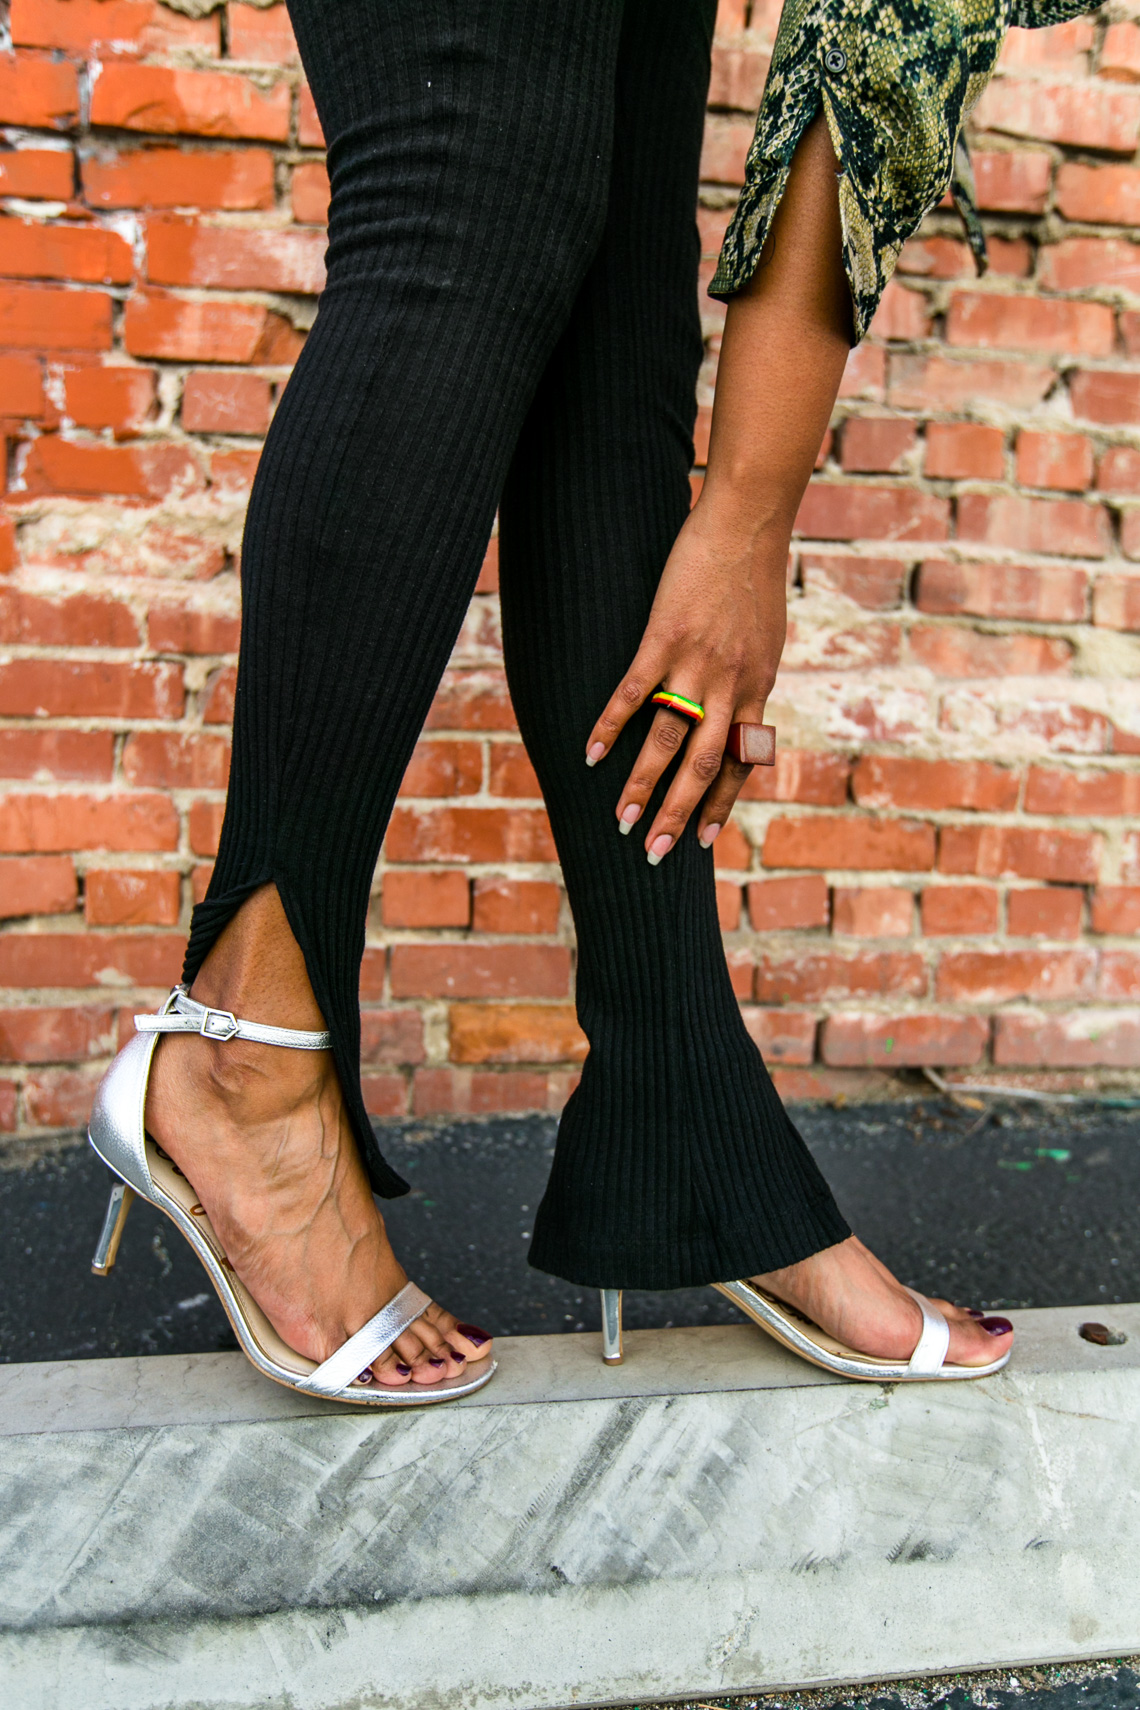 sam edelman sandals-silver strappy sandals-xmmtt-rsee-snake print outfit